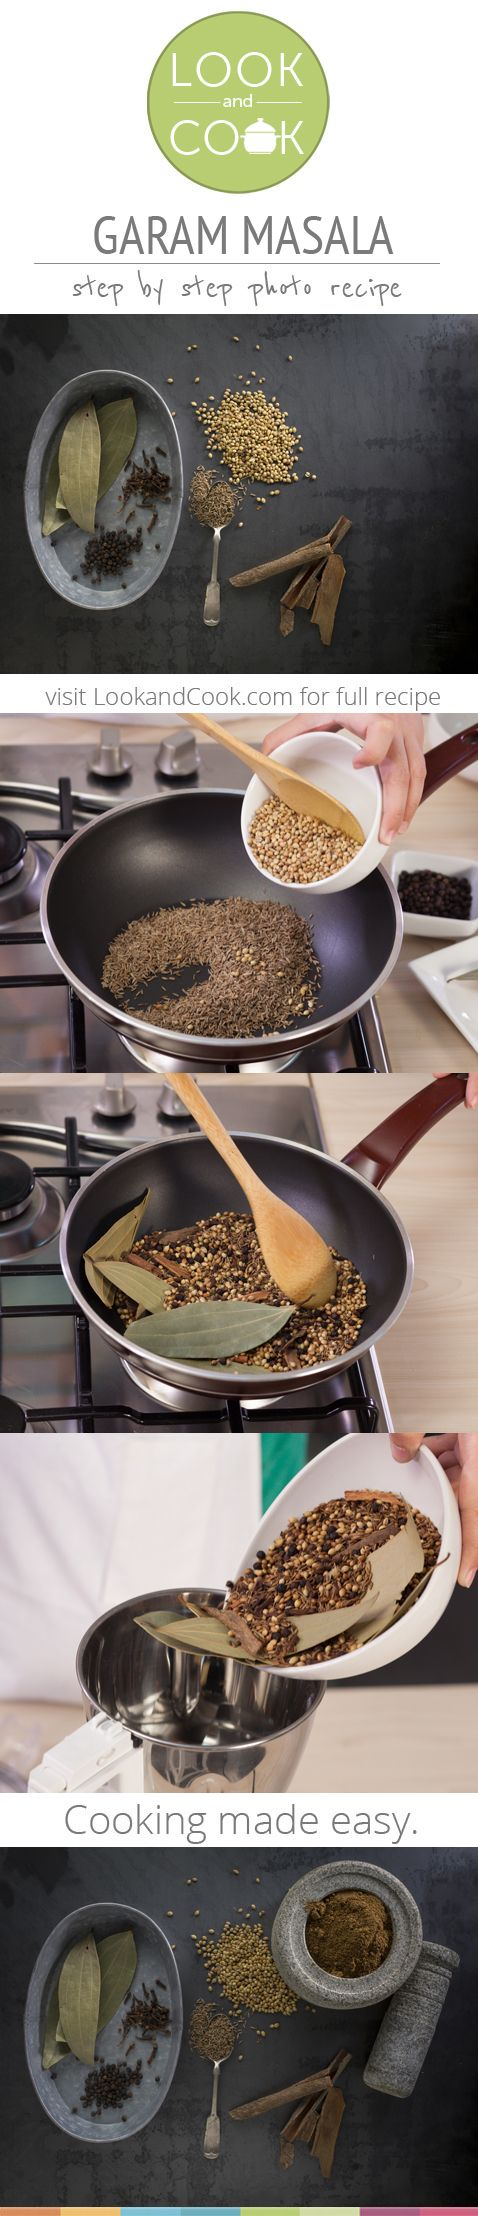 GARAM MASALA RECIPE Garam Masala Recipe (#LC14167): This home made recipe. Get step by step photo recipe at lookandcook.com